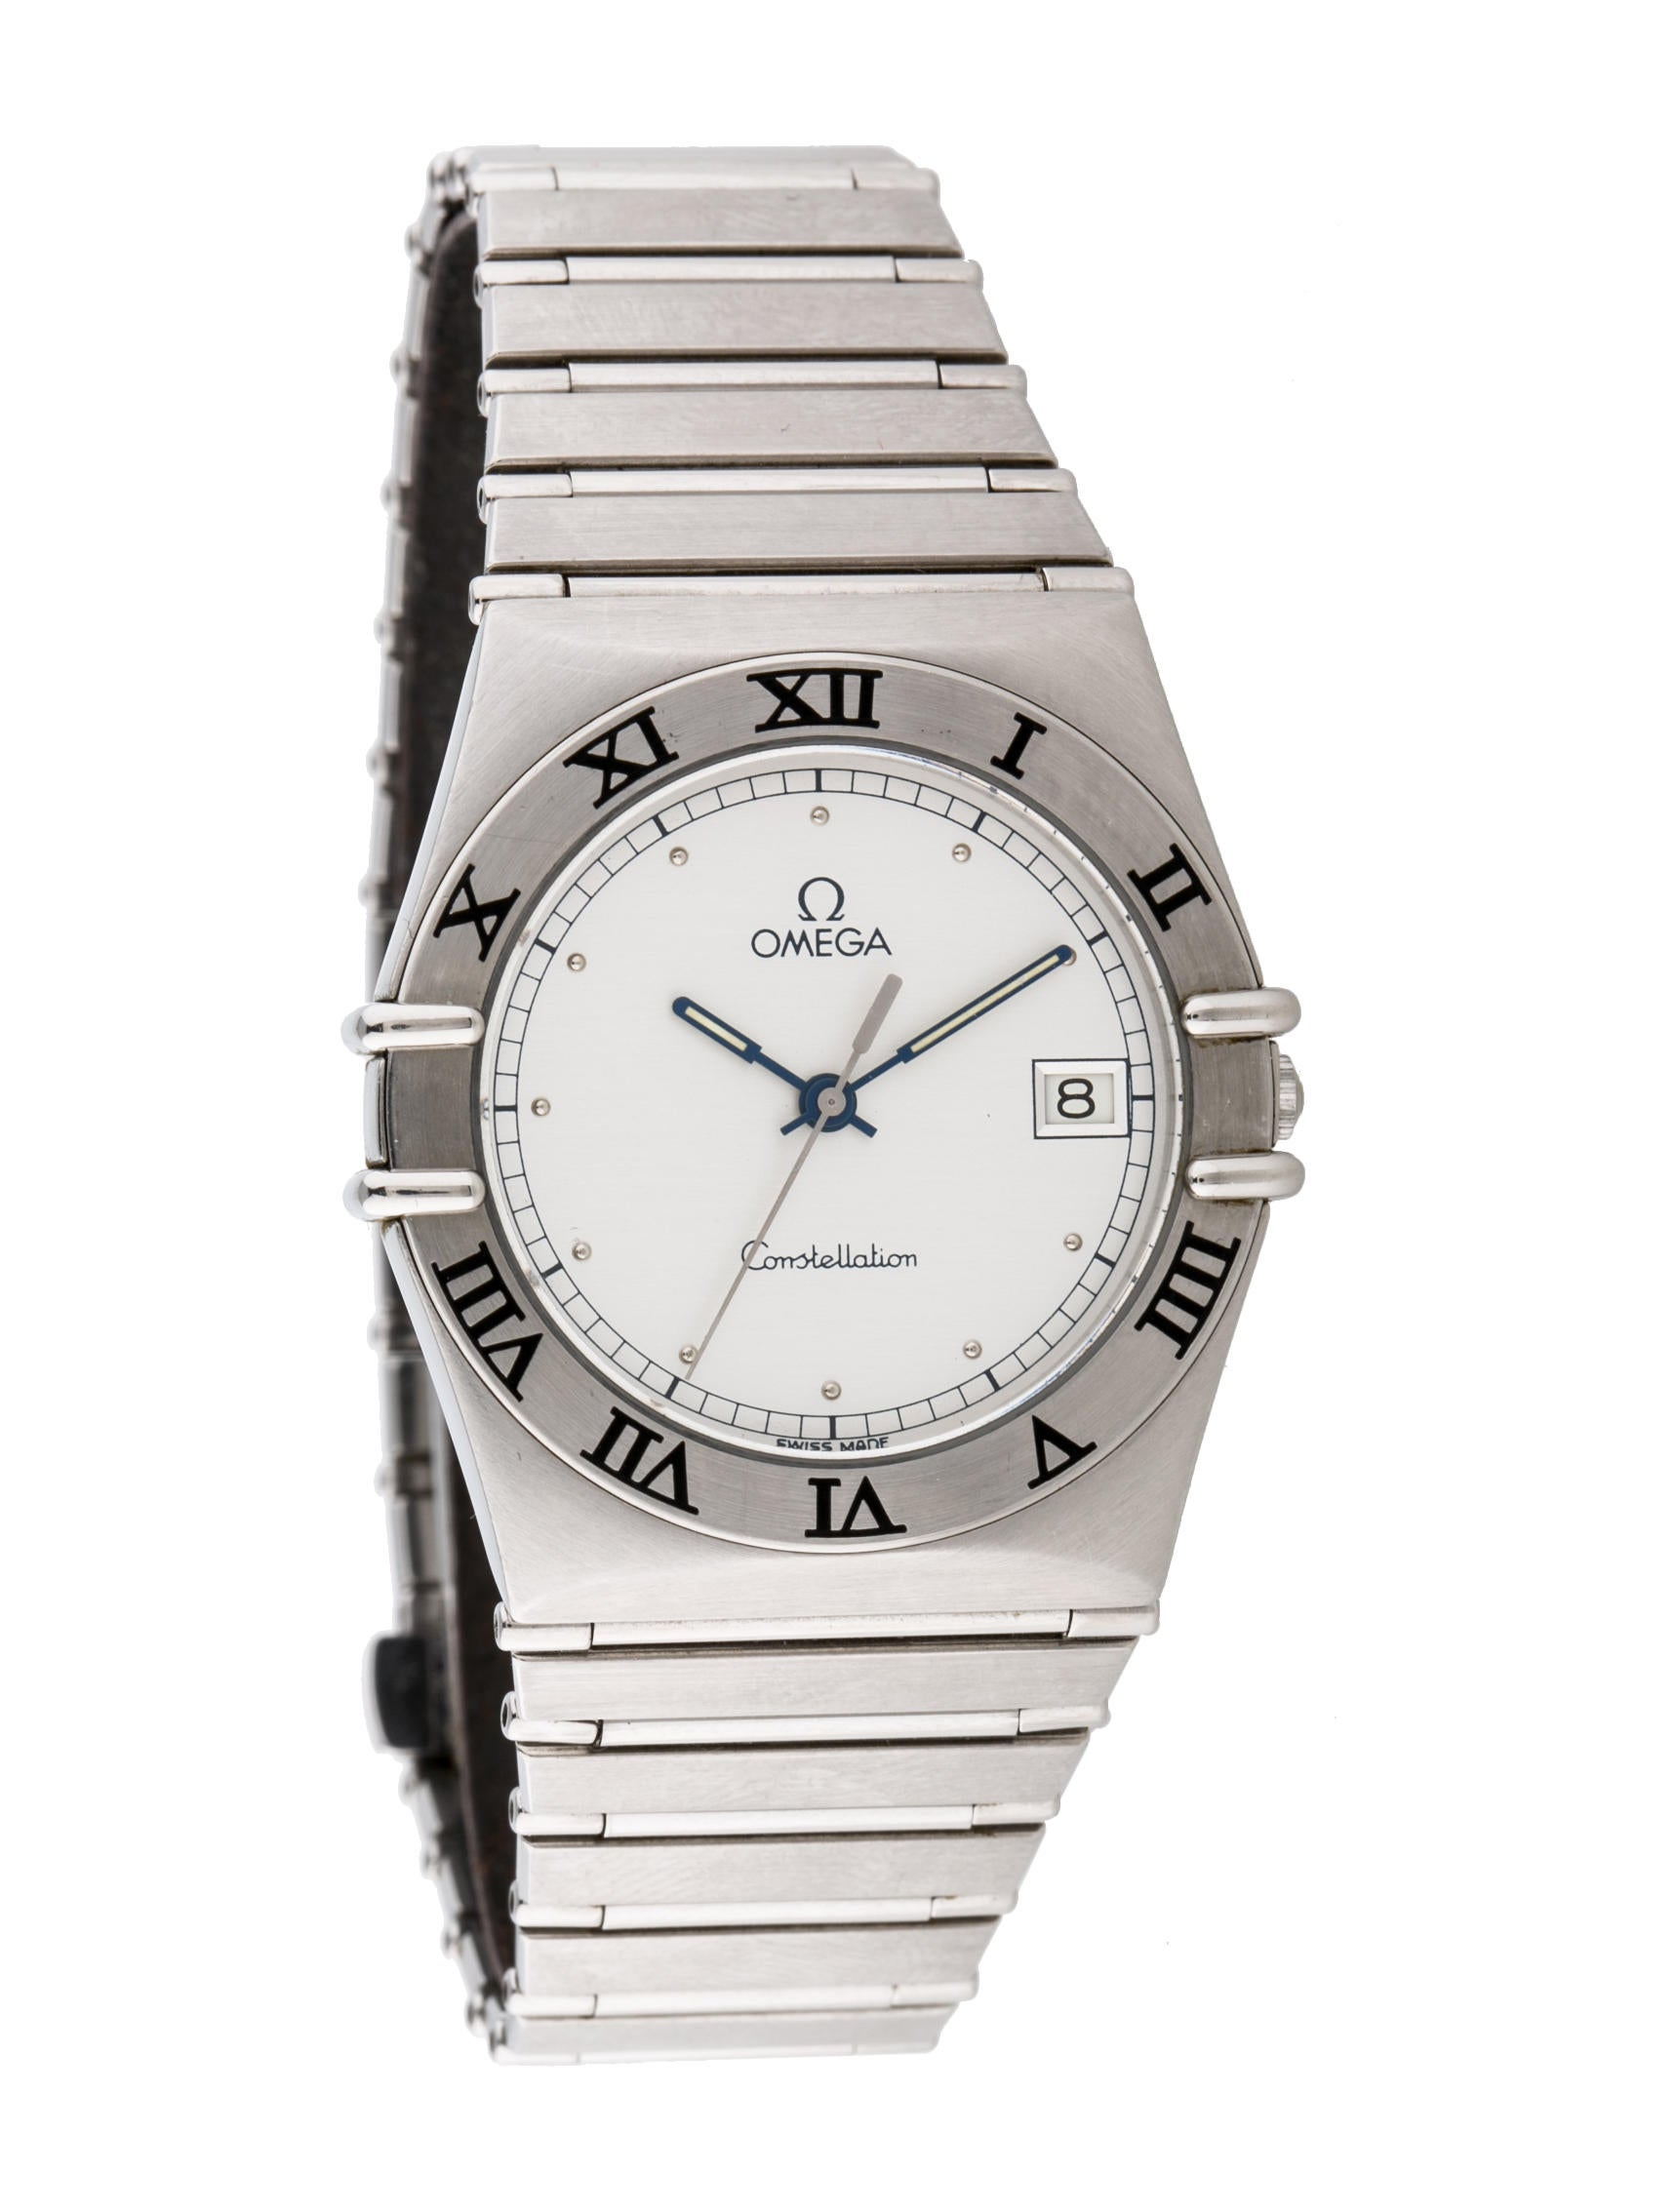 Omega constellation watch bracelet omg20140 the realreal for Omega watch constellation